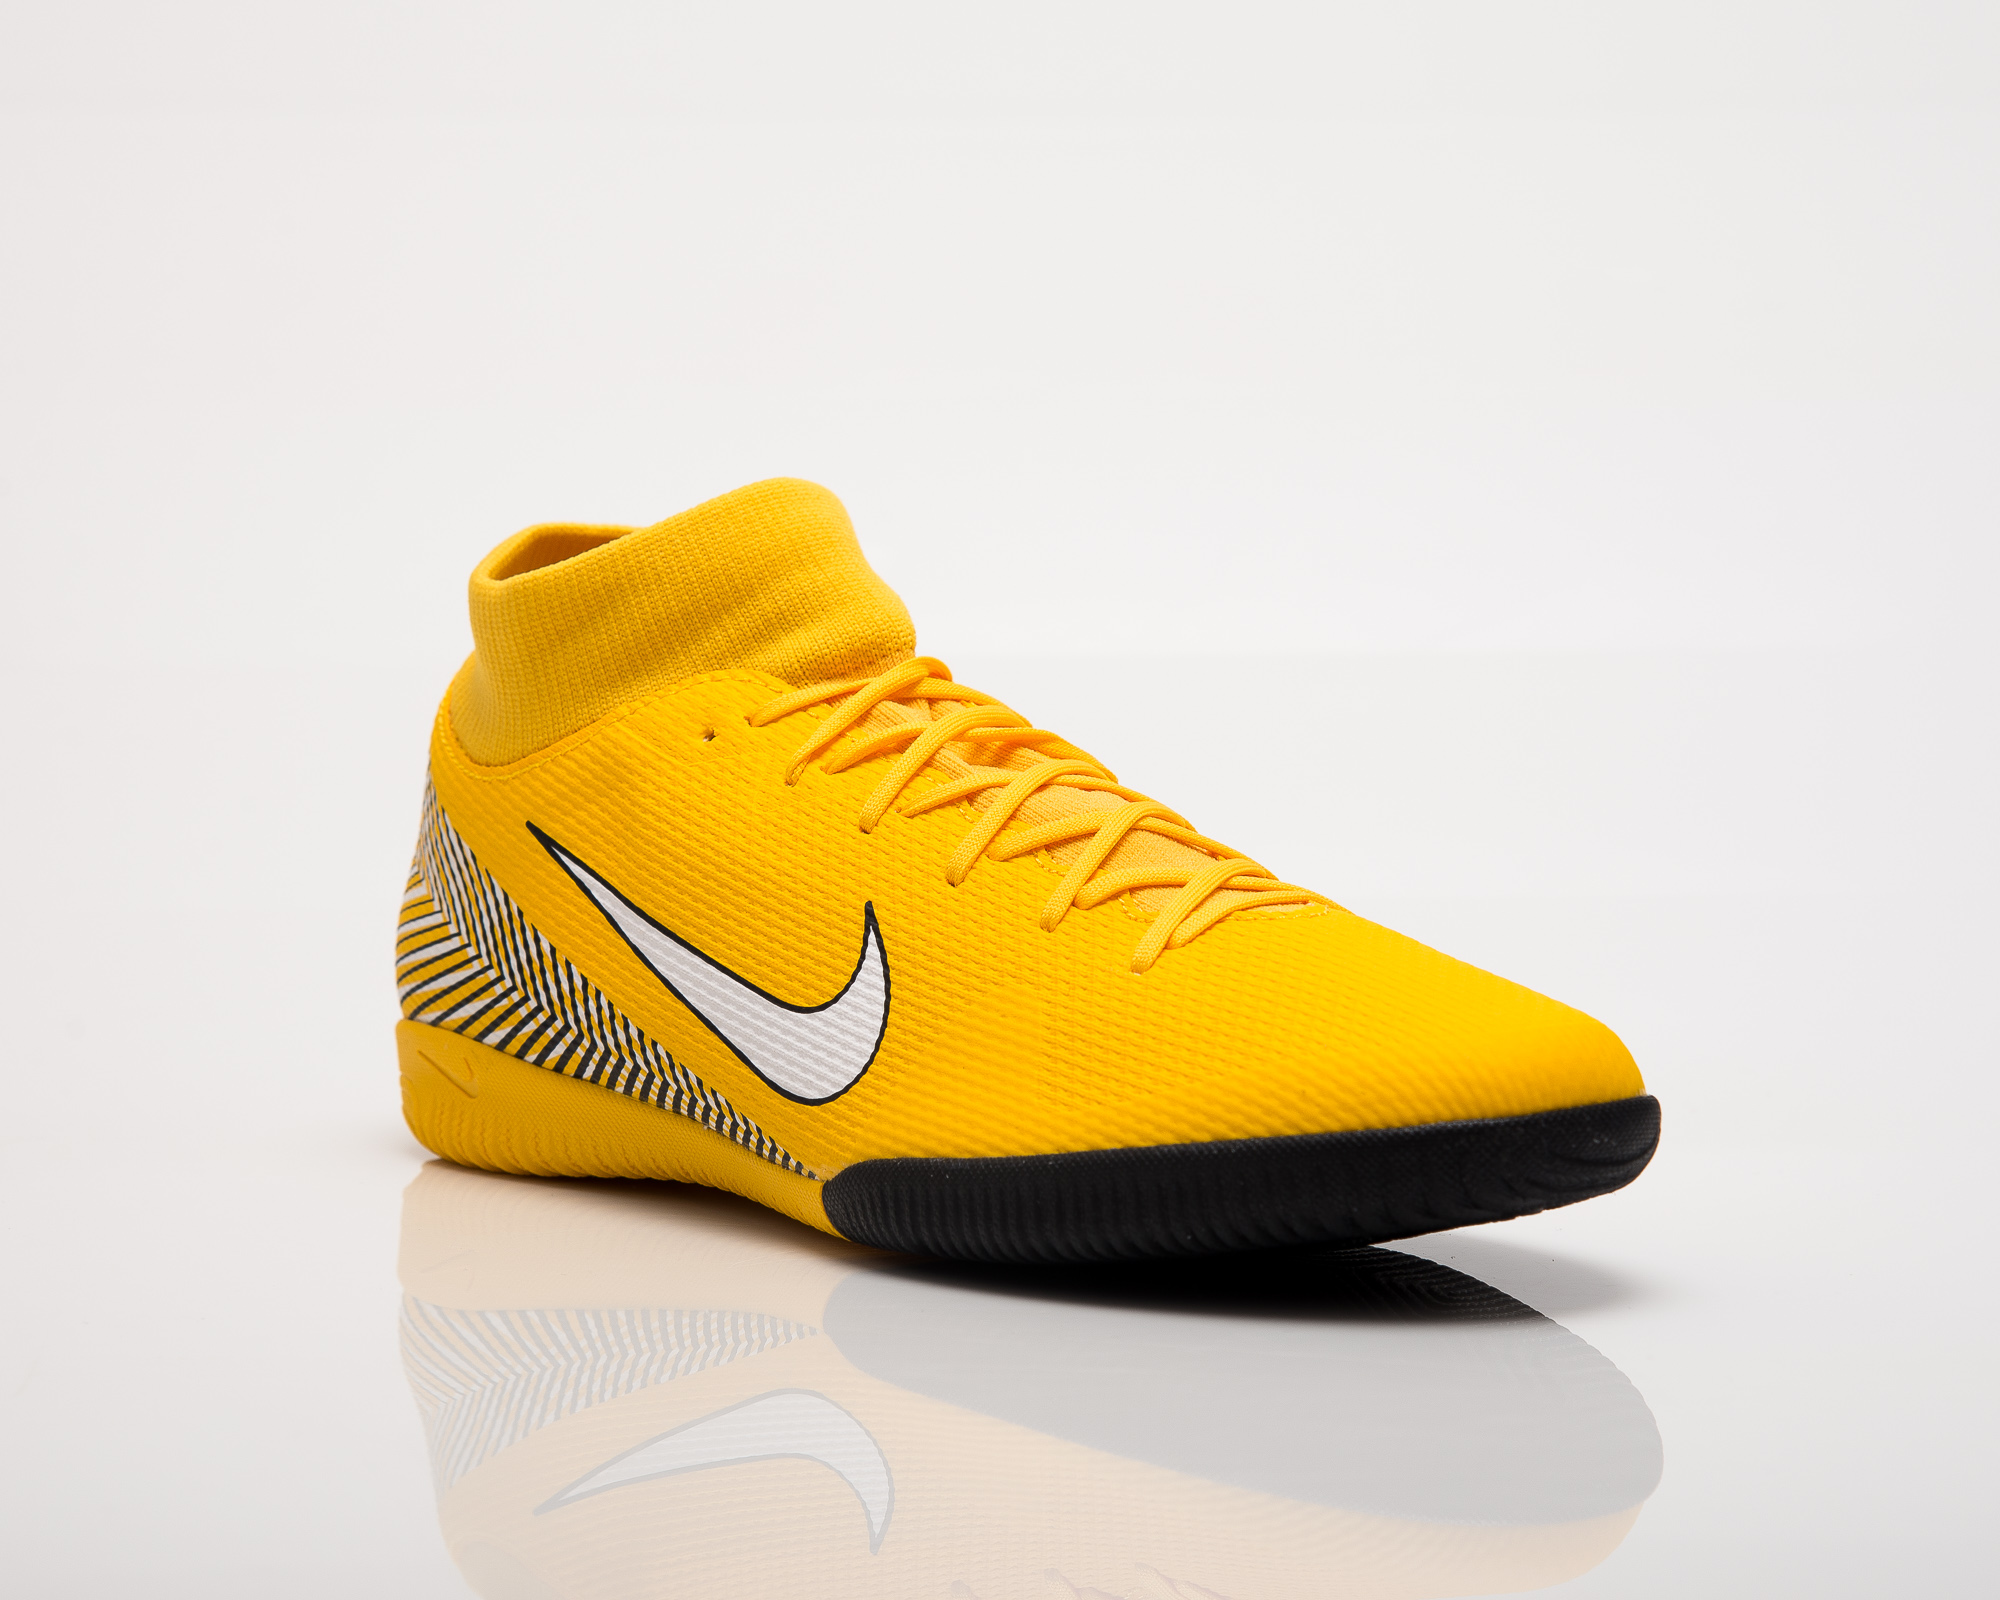 uk availability 52a24 5935b Nike Mercurial Superfly VI Academy Neymar Jr. IC Soccer ...